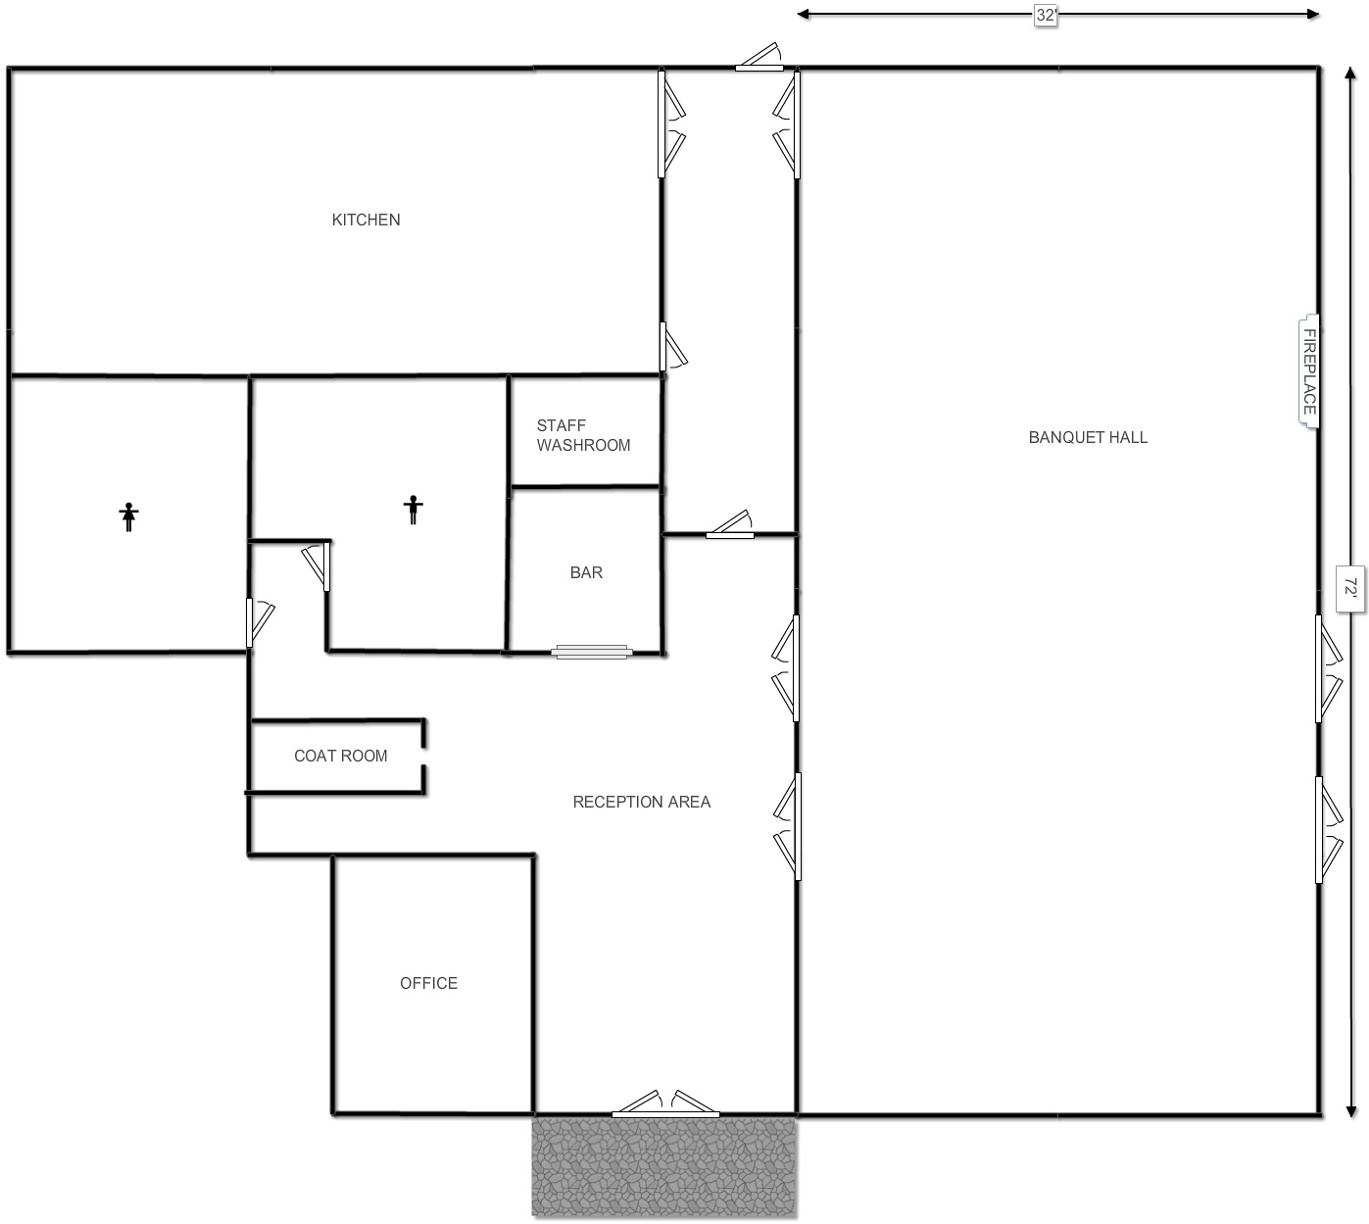 Banquet hall floor plan gurus floor for Banquet floor plan template